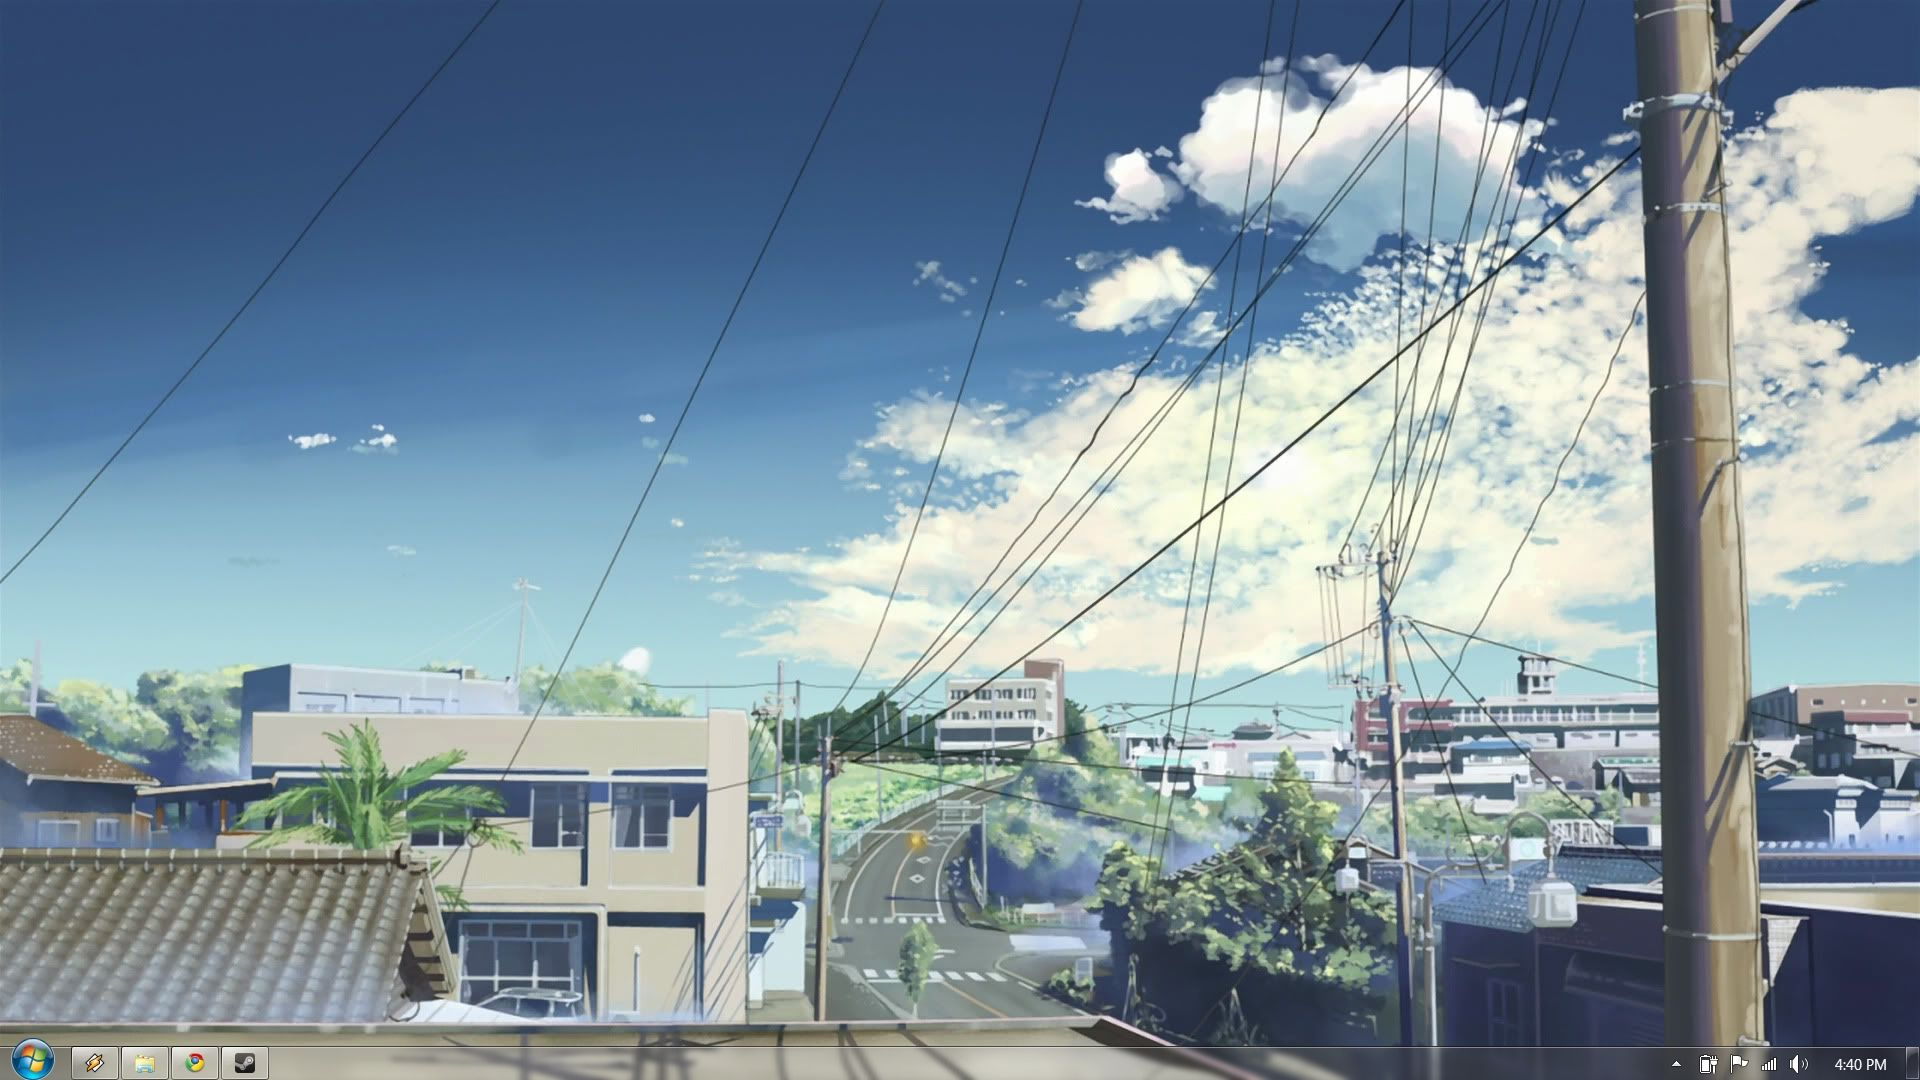 5 centimeters per second wallpaper Google Search